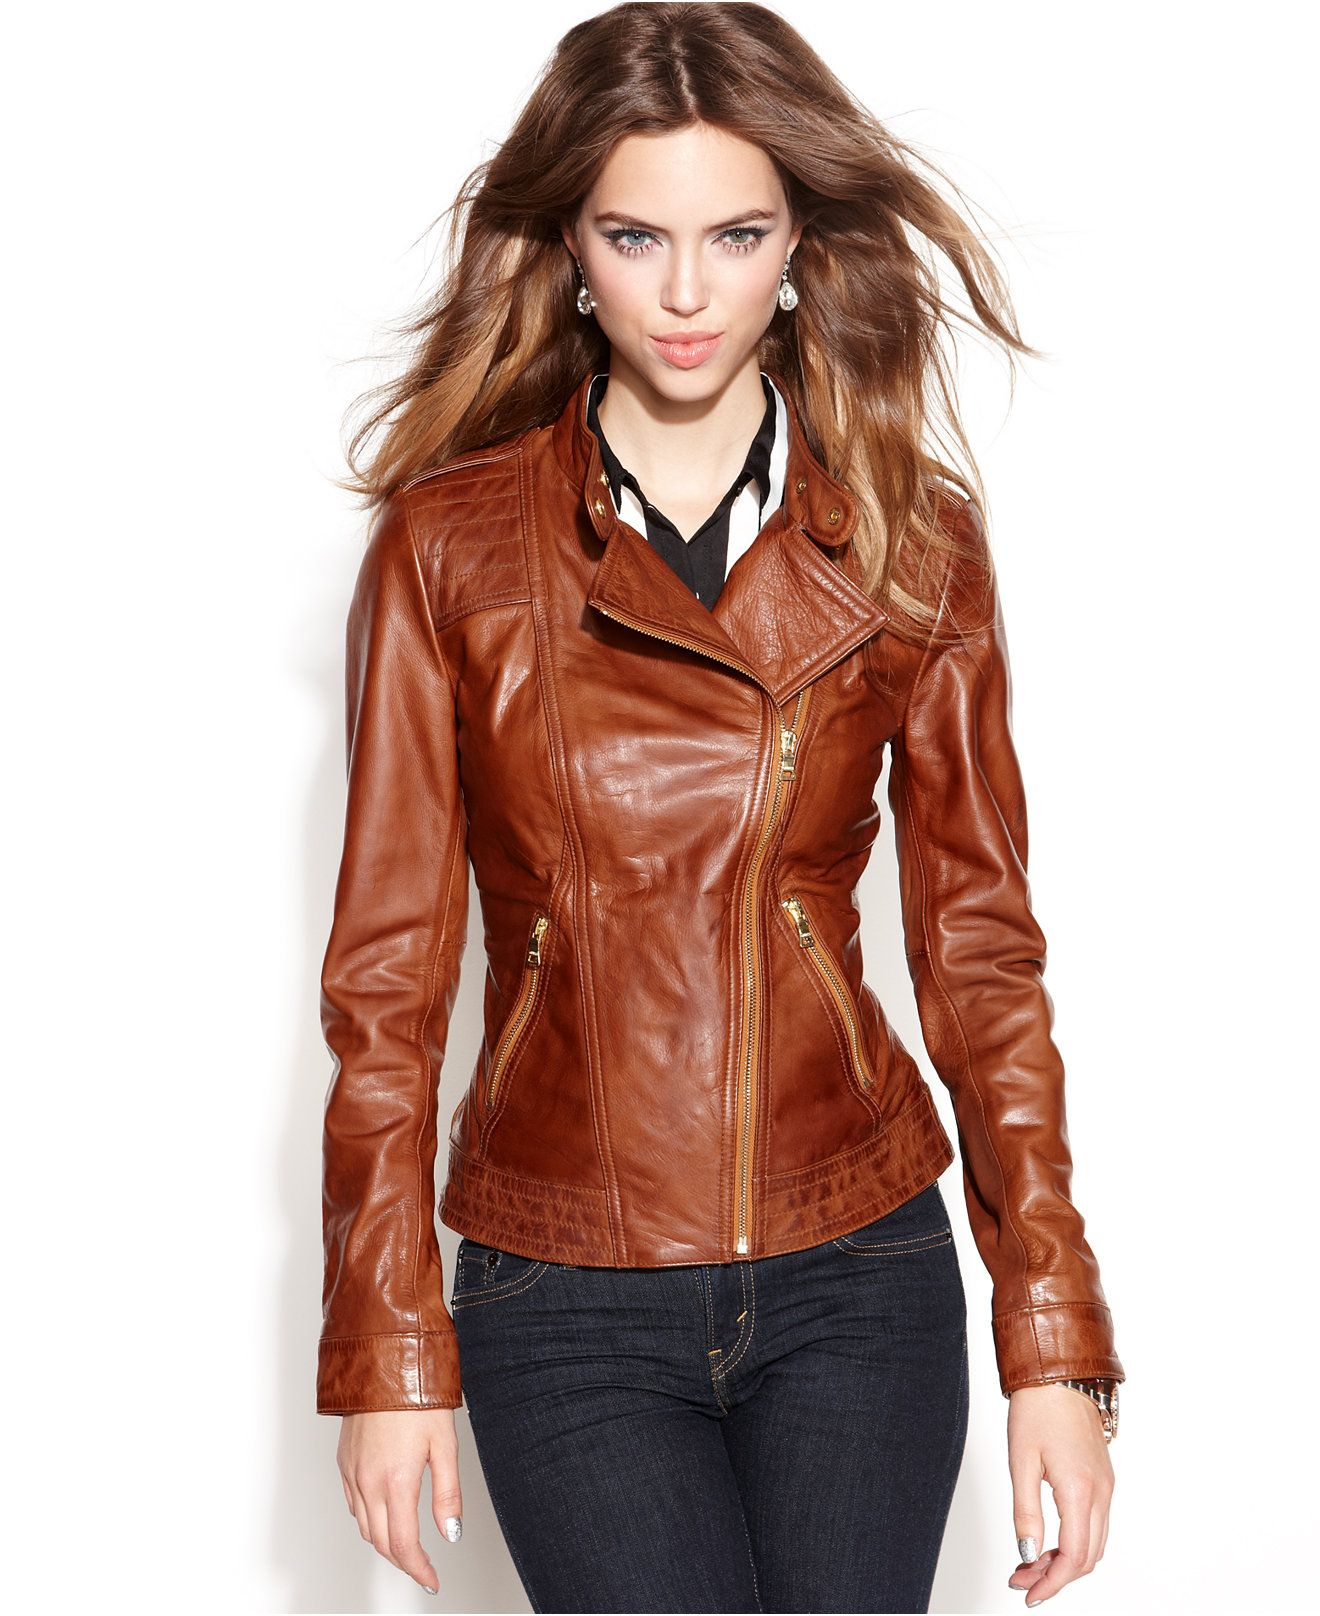 GUESS Asymmetrical Zip-Front Leather Jacket - Jackets & Blazers ...